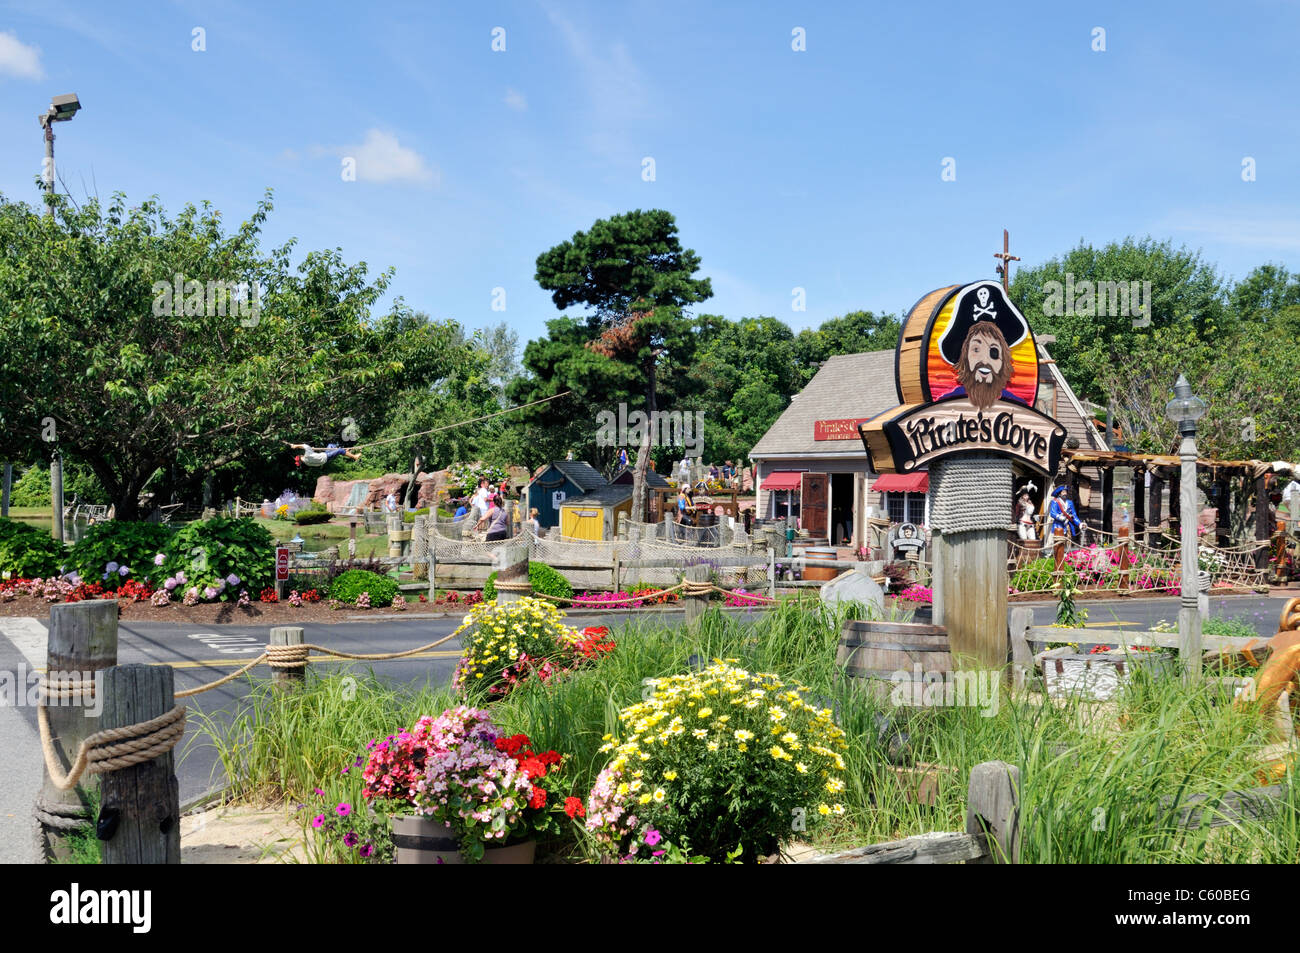 awesome cove cape cod #5: Entrance to Pirates Cove miniature golf course on a sunny clear summer day,  Yarmouth, Cape Cod. USA